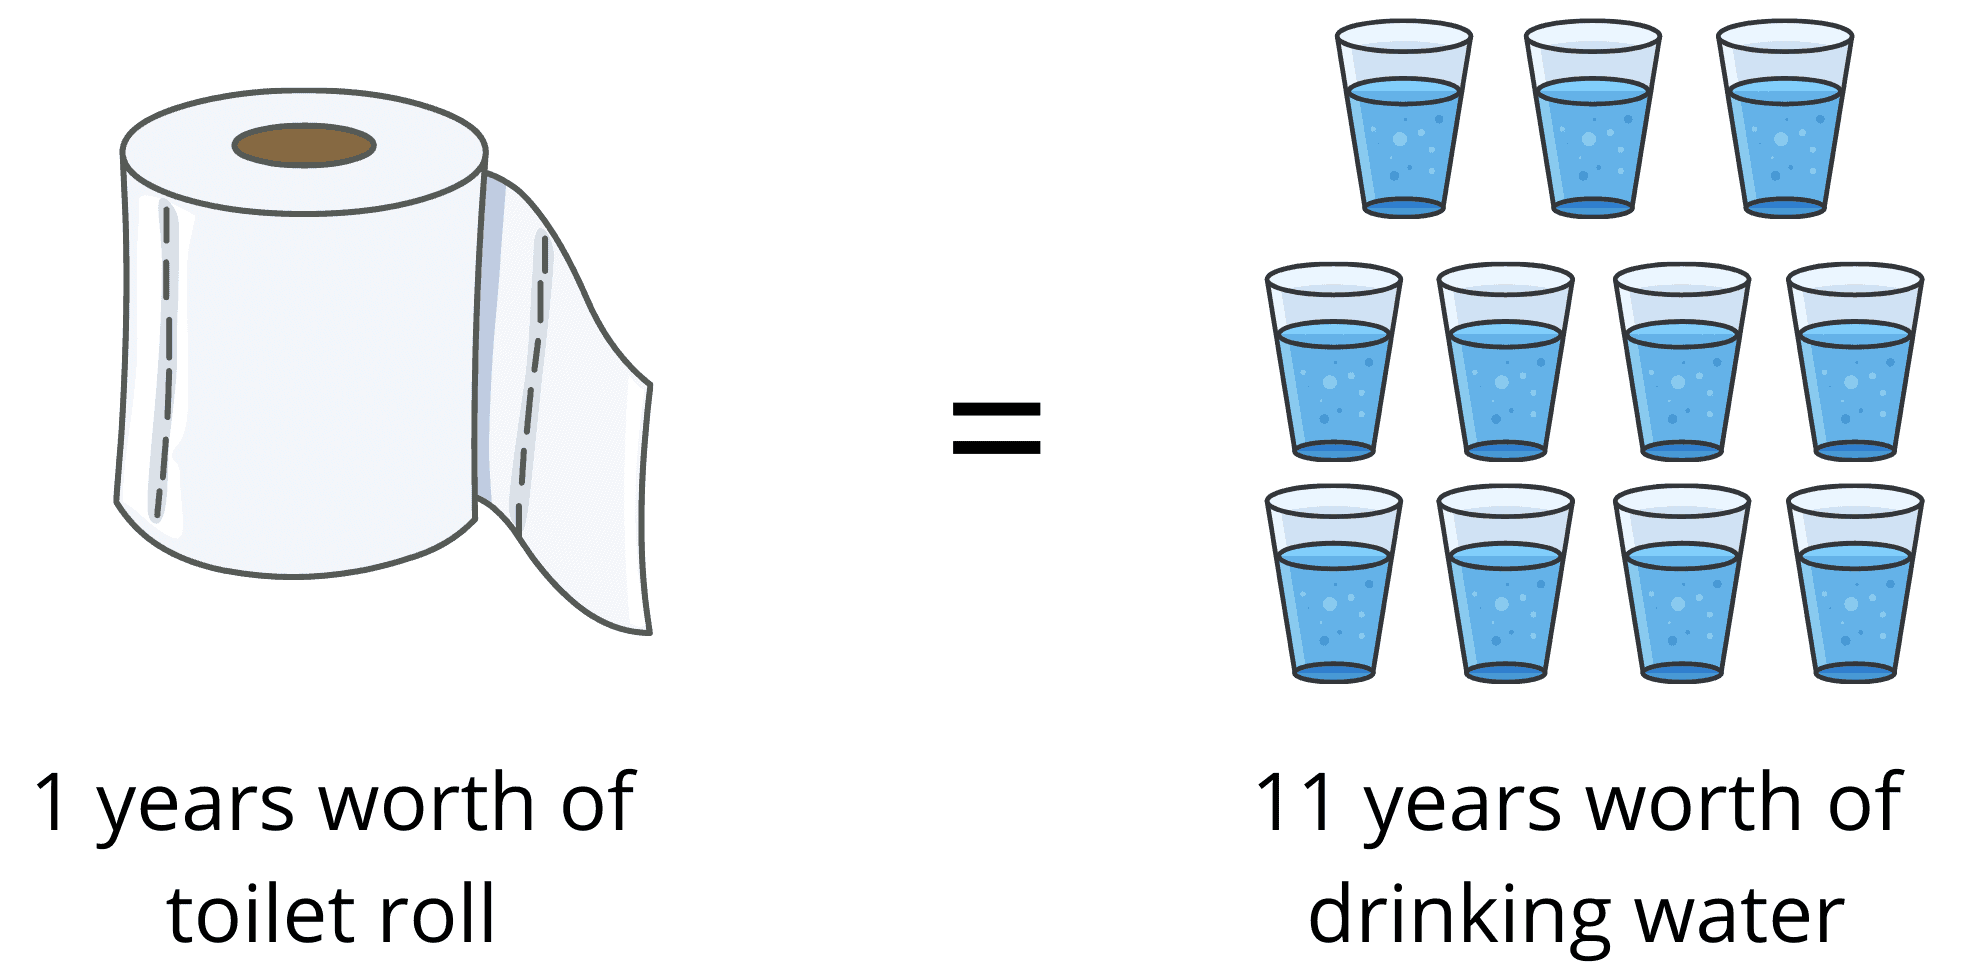 how much water does toilet roll use